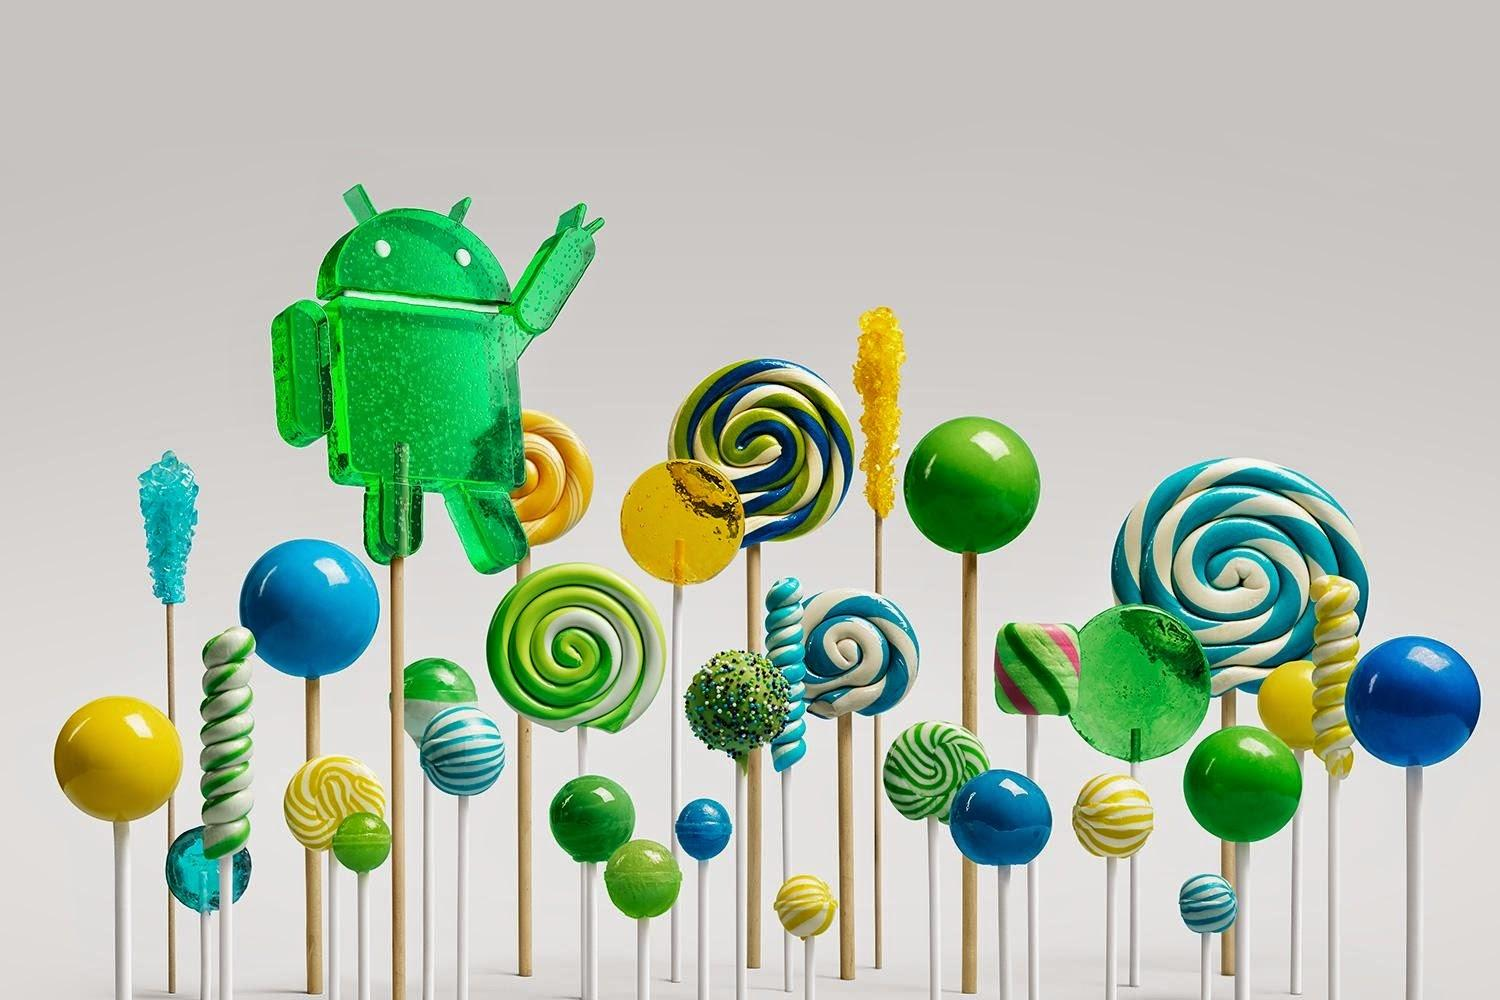 10 Awesome Android 5.0 Lollipop Tips and Tricks